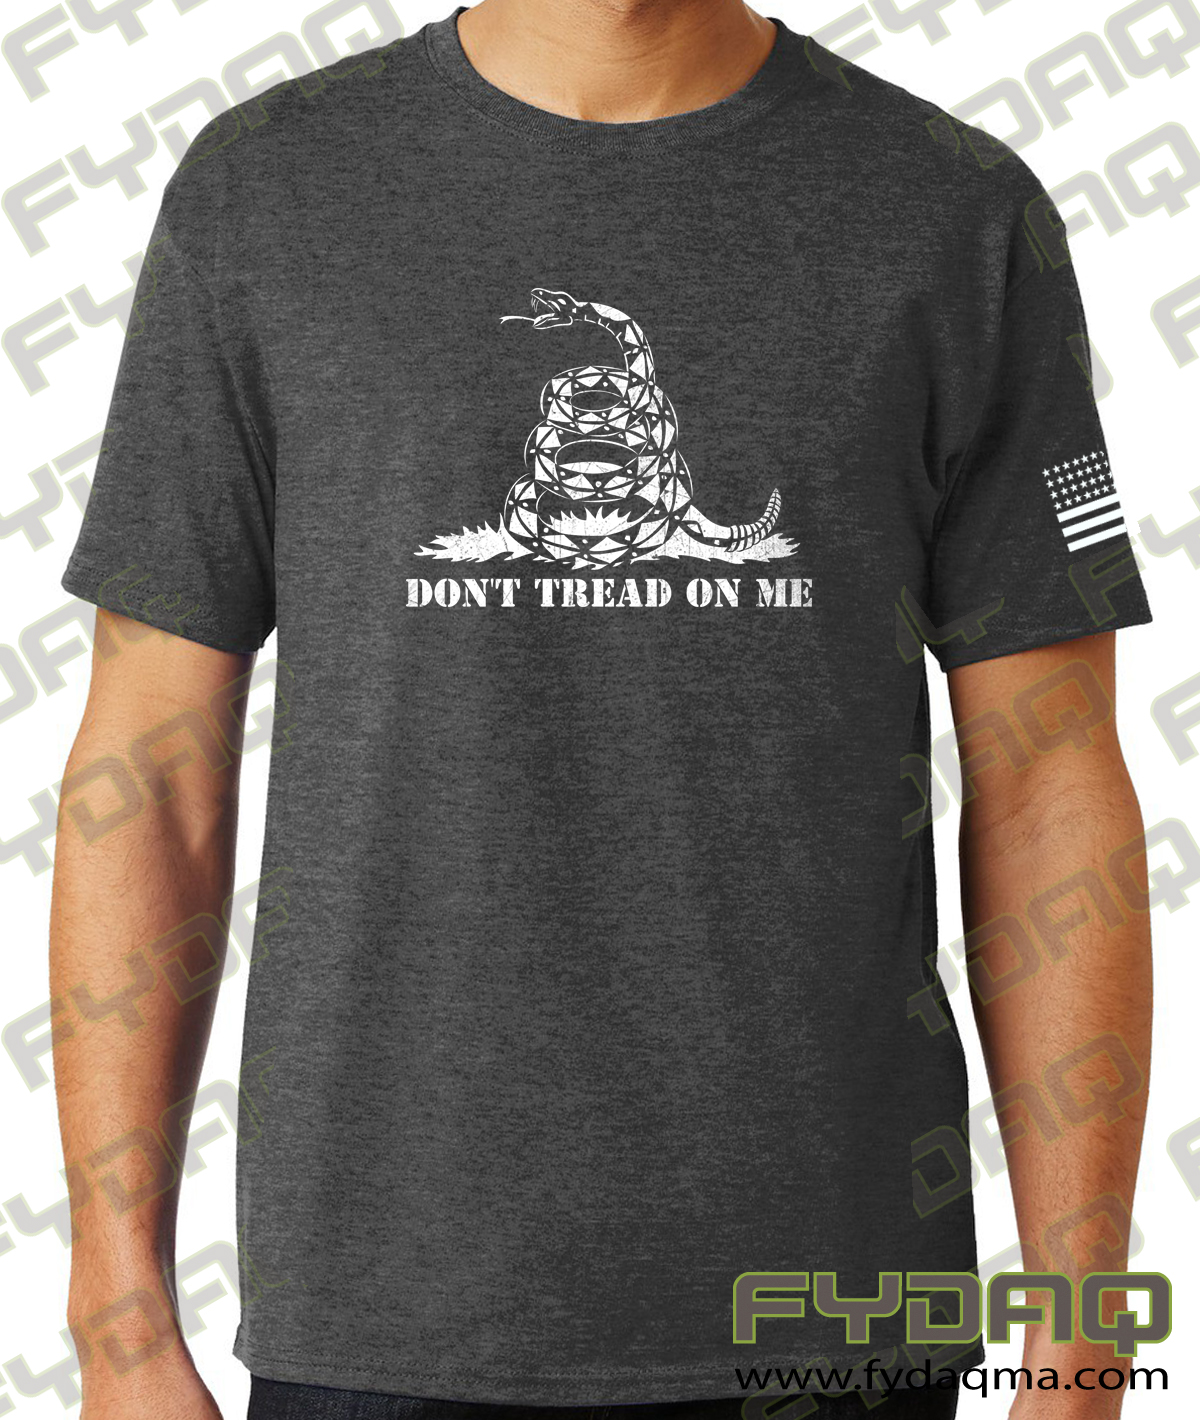 gadsden-flag-don't-tread-on-me-charcoal-heather-grey-tshirt-fydaq